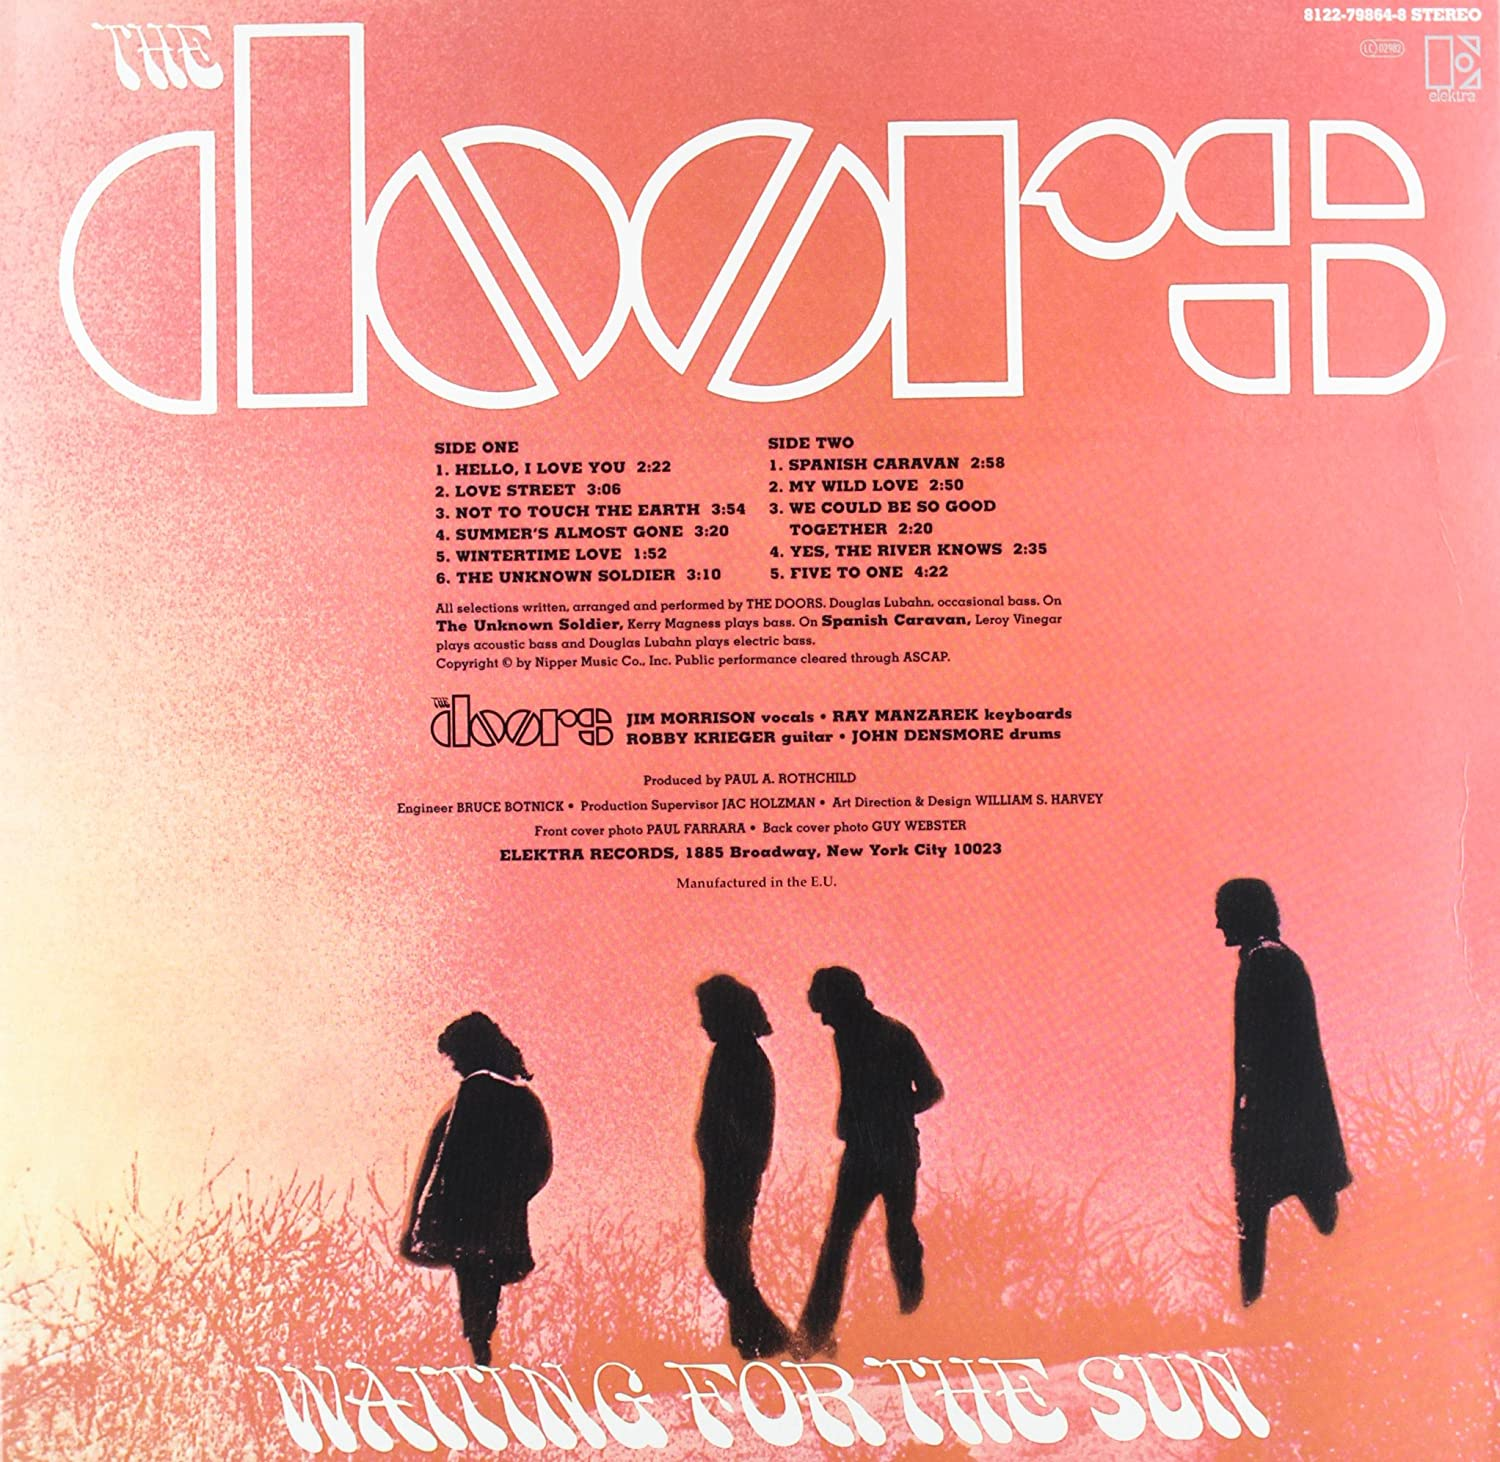 sc 1 st  Amazon.com & The Doors - Waiting for the Sun (180 Gram Vinyl) - Amazon.com Music